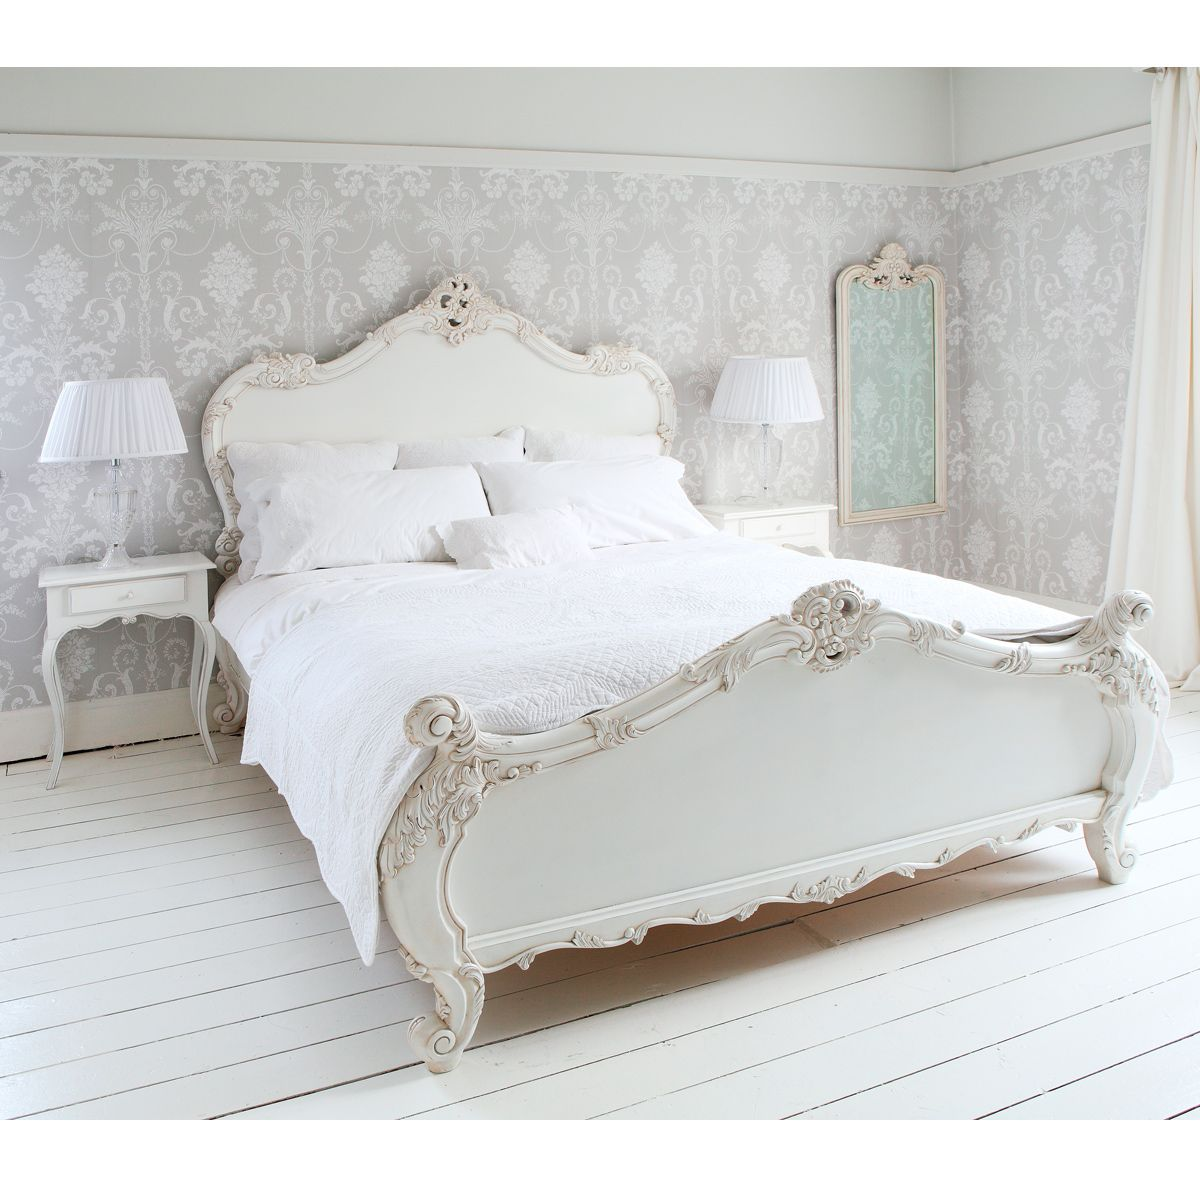 French Bed On Pinterest Classic Furniture Luxury Bedrooms And Antique Bedr